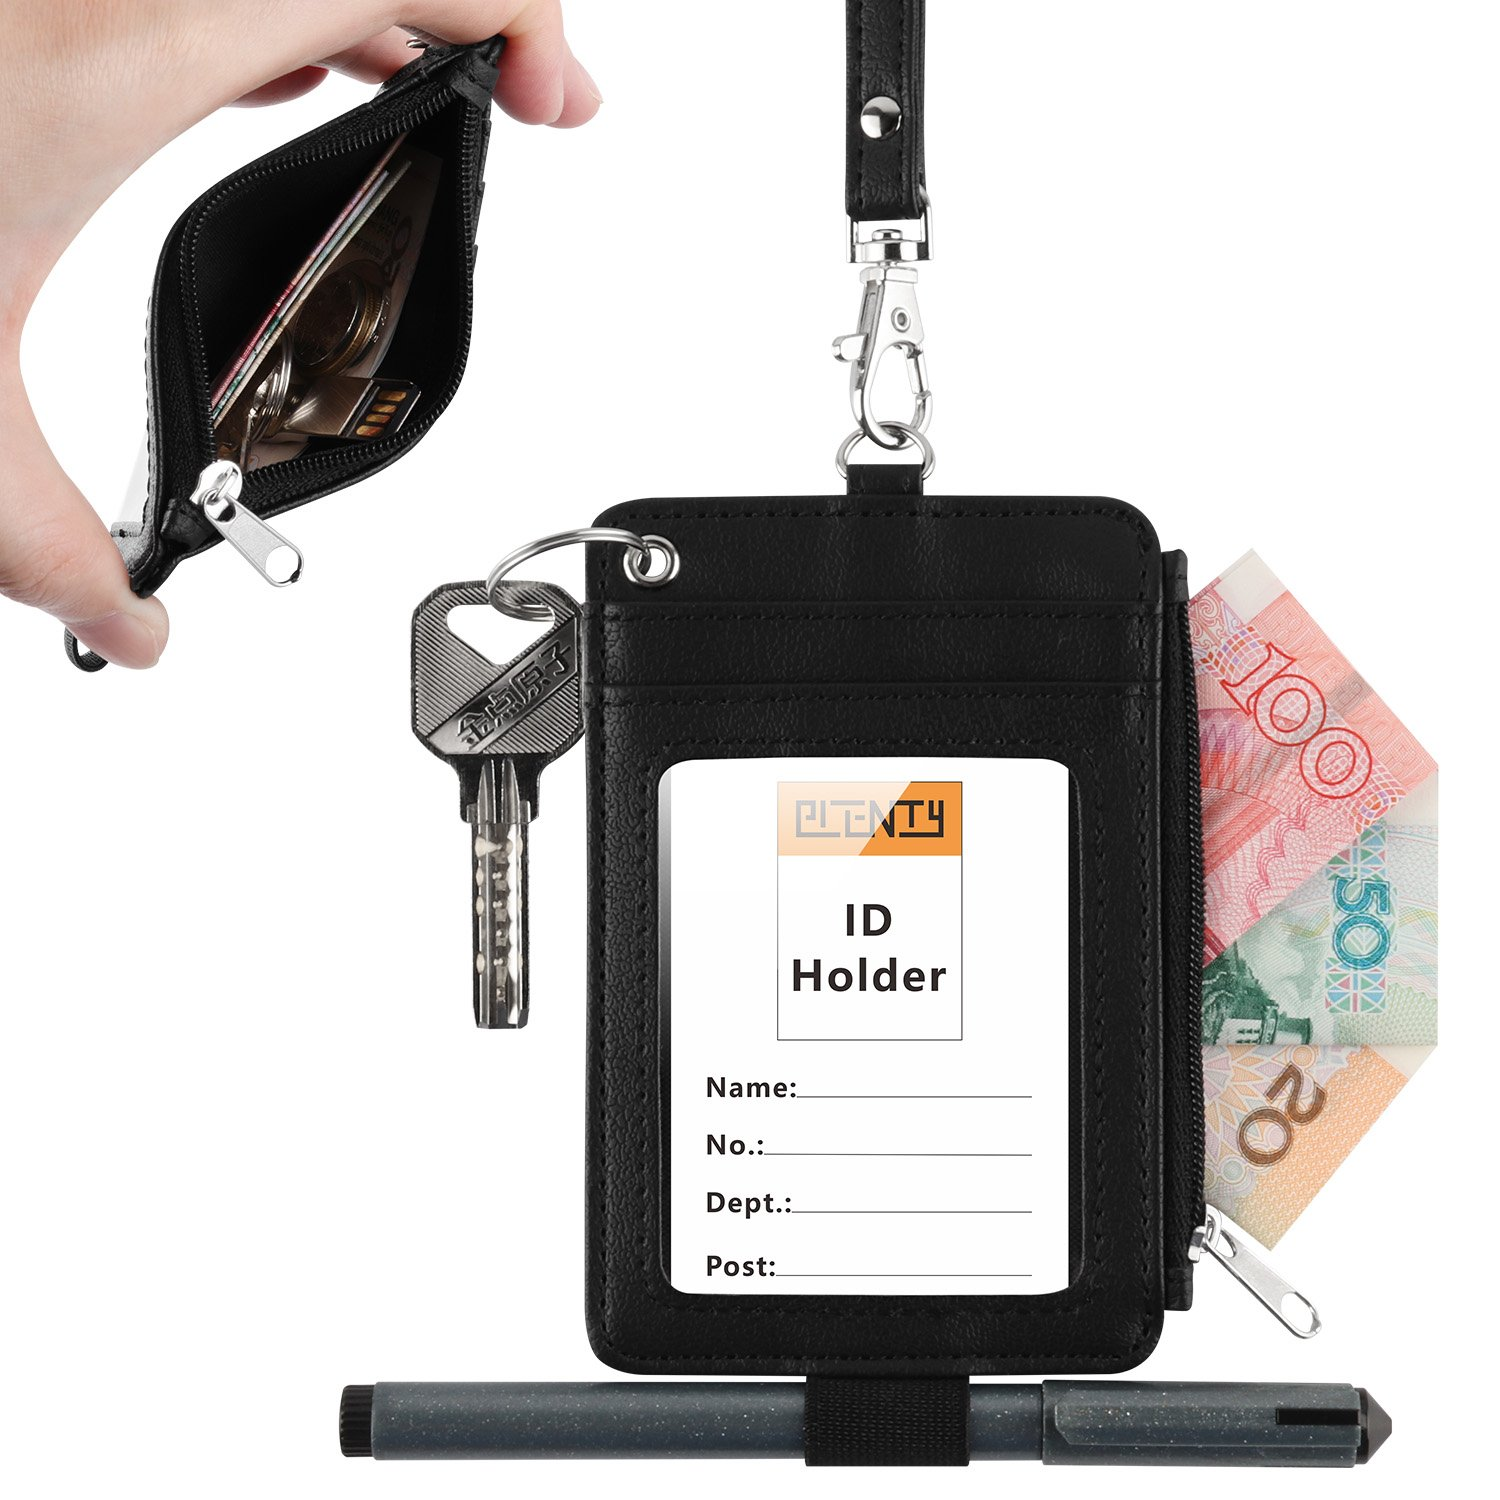 Leather Badge Holder, Plenty Heavy Duty ID Badge Wallet with Pen Loop Key Ring,5 Card Slots, 1 Side Zipper Pocket and Neck Lanyard Strap for Offices School ID, Driver Licence (Black)